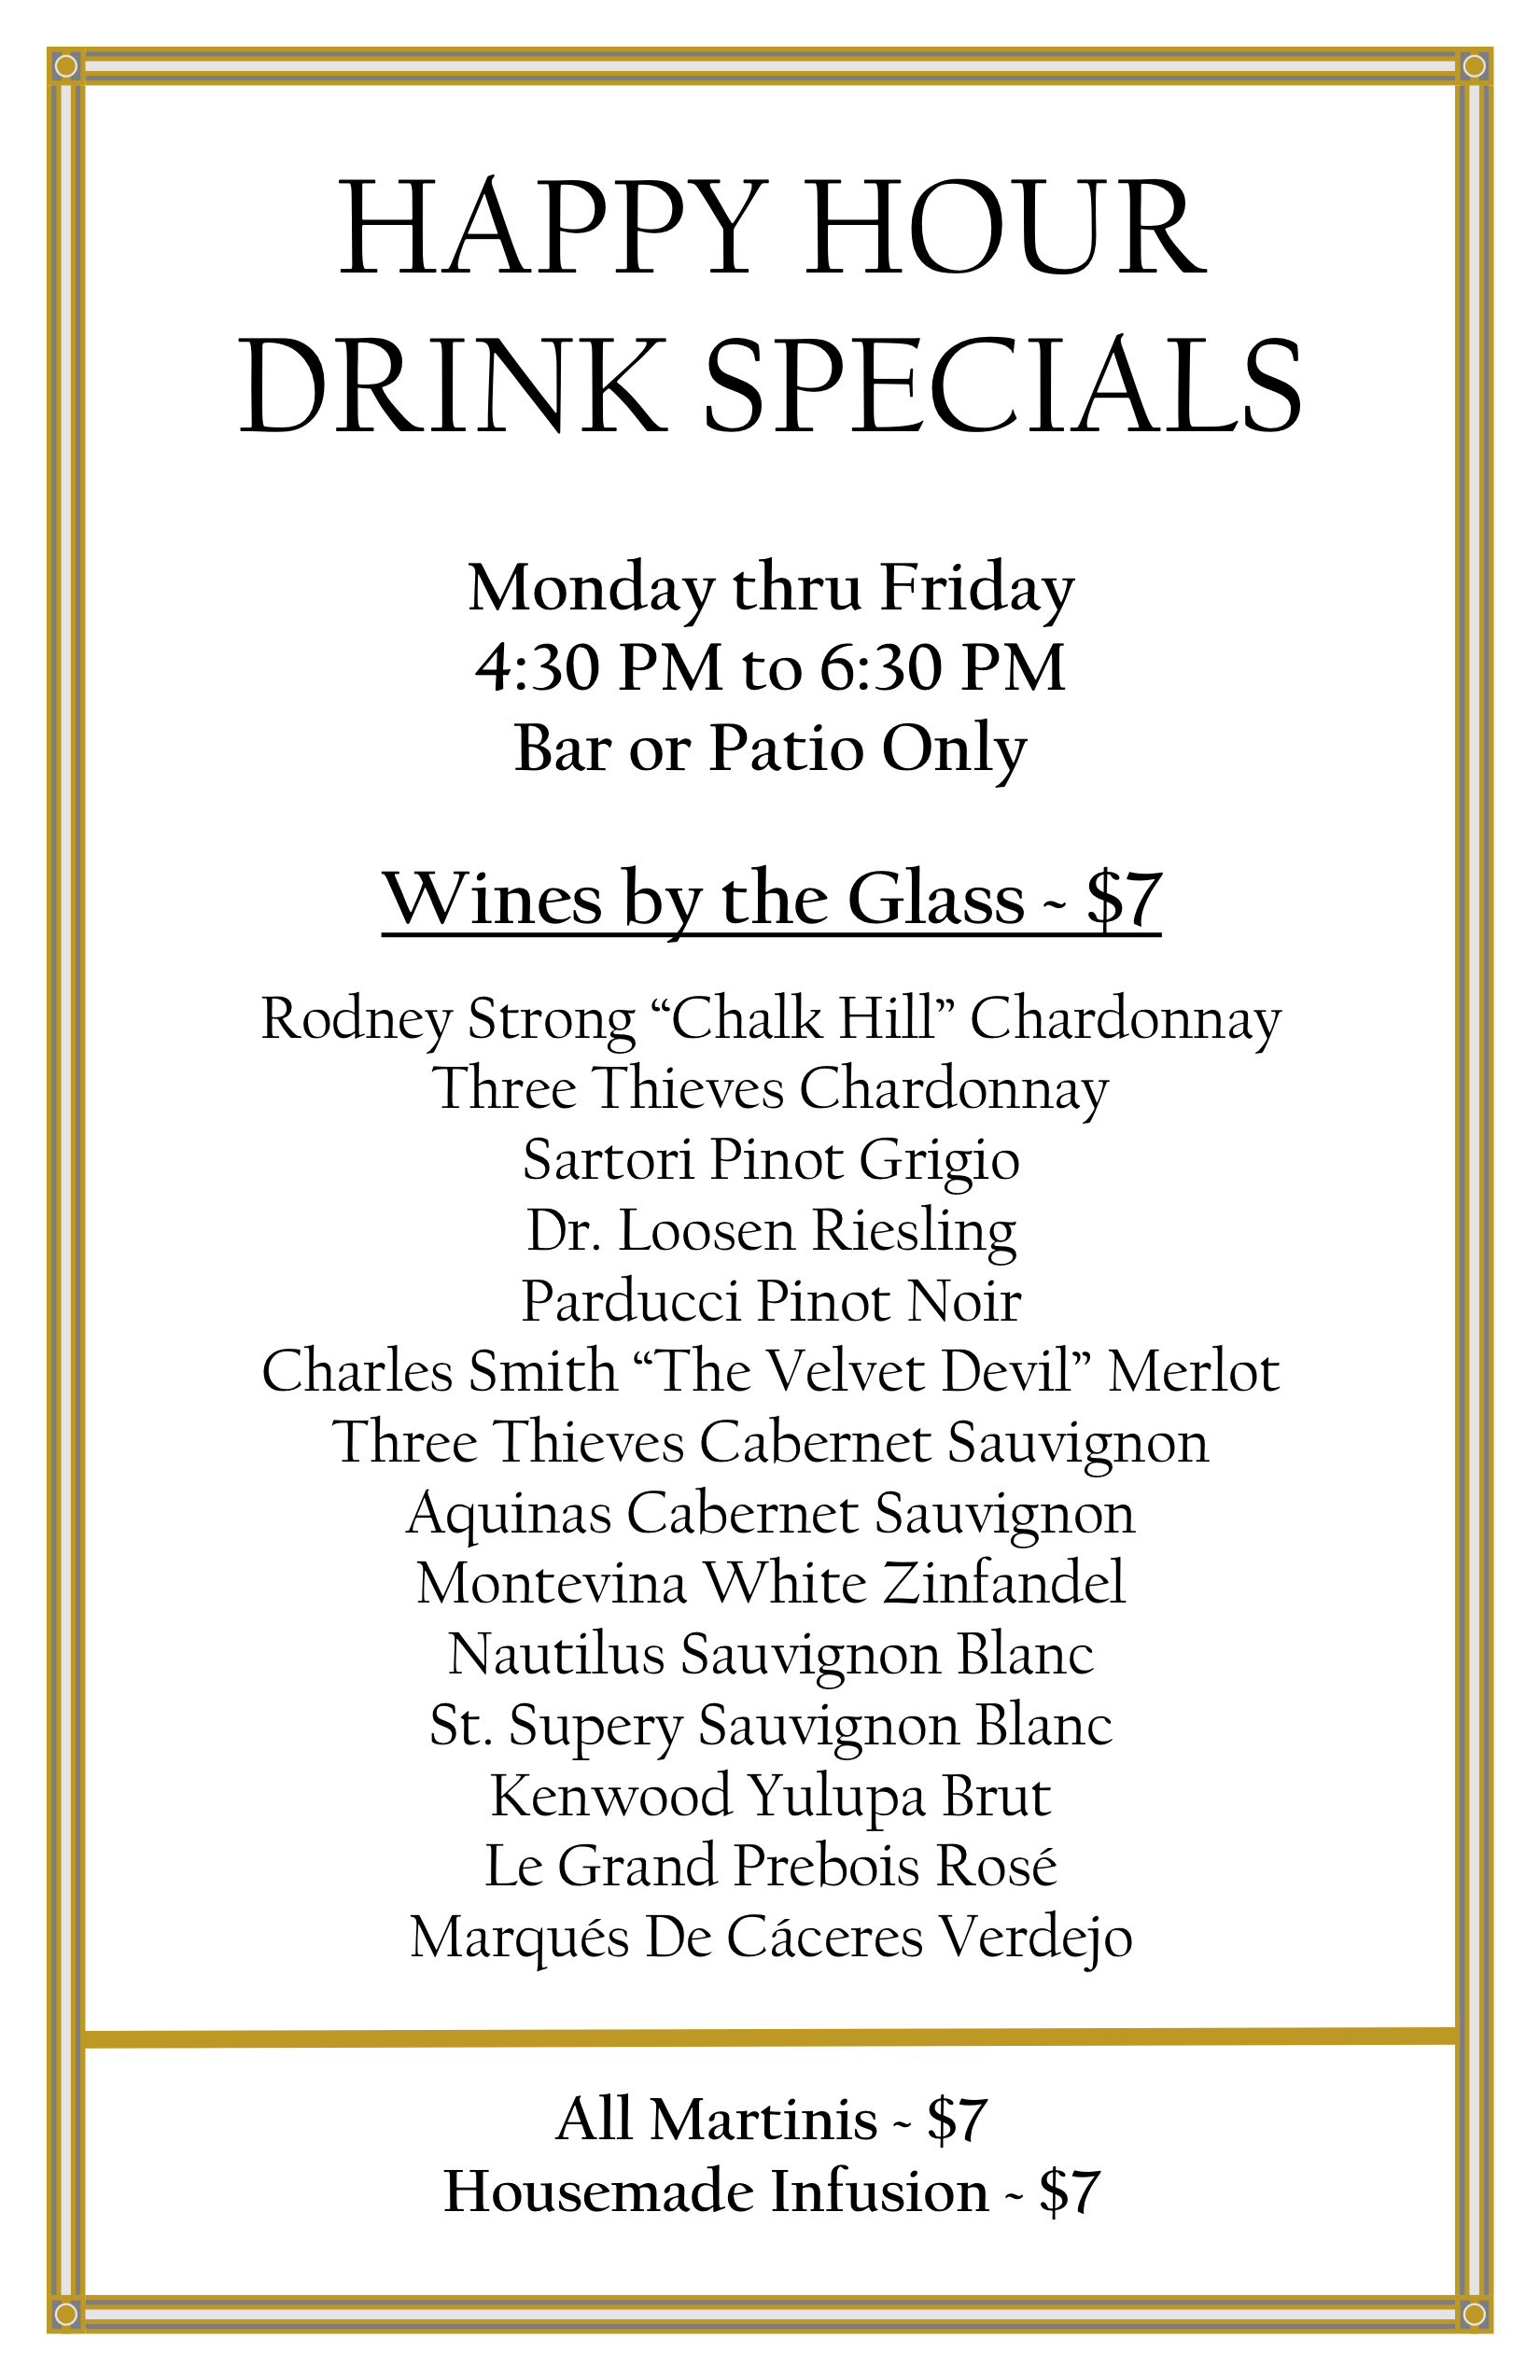 Fish Happy Hour Drink Specials 05.01.19.png